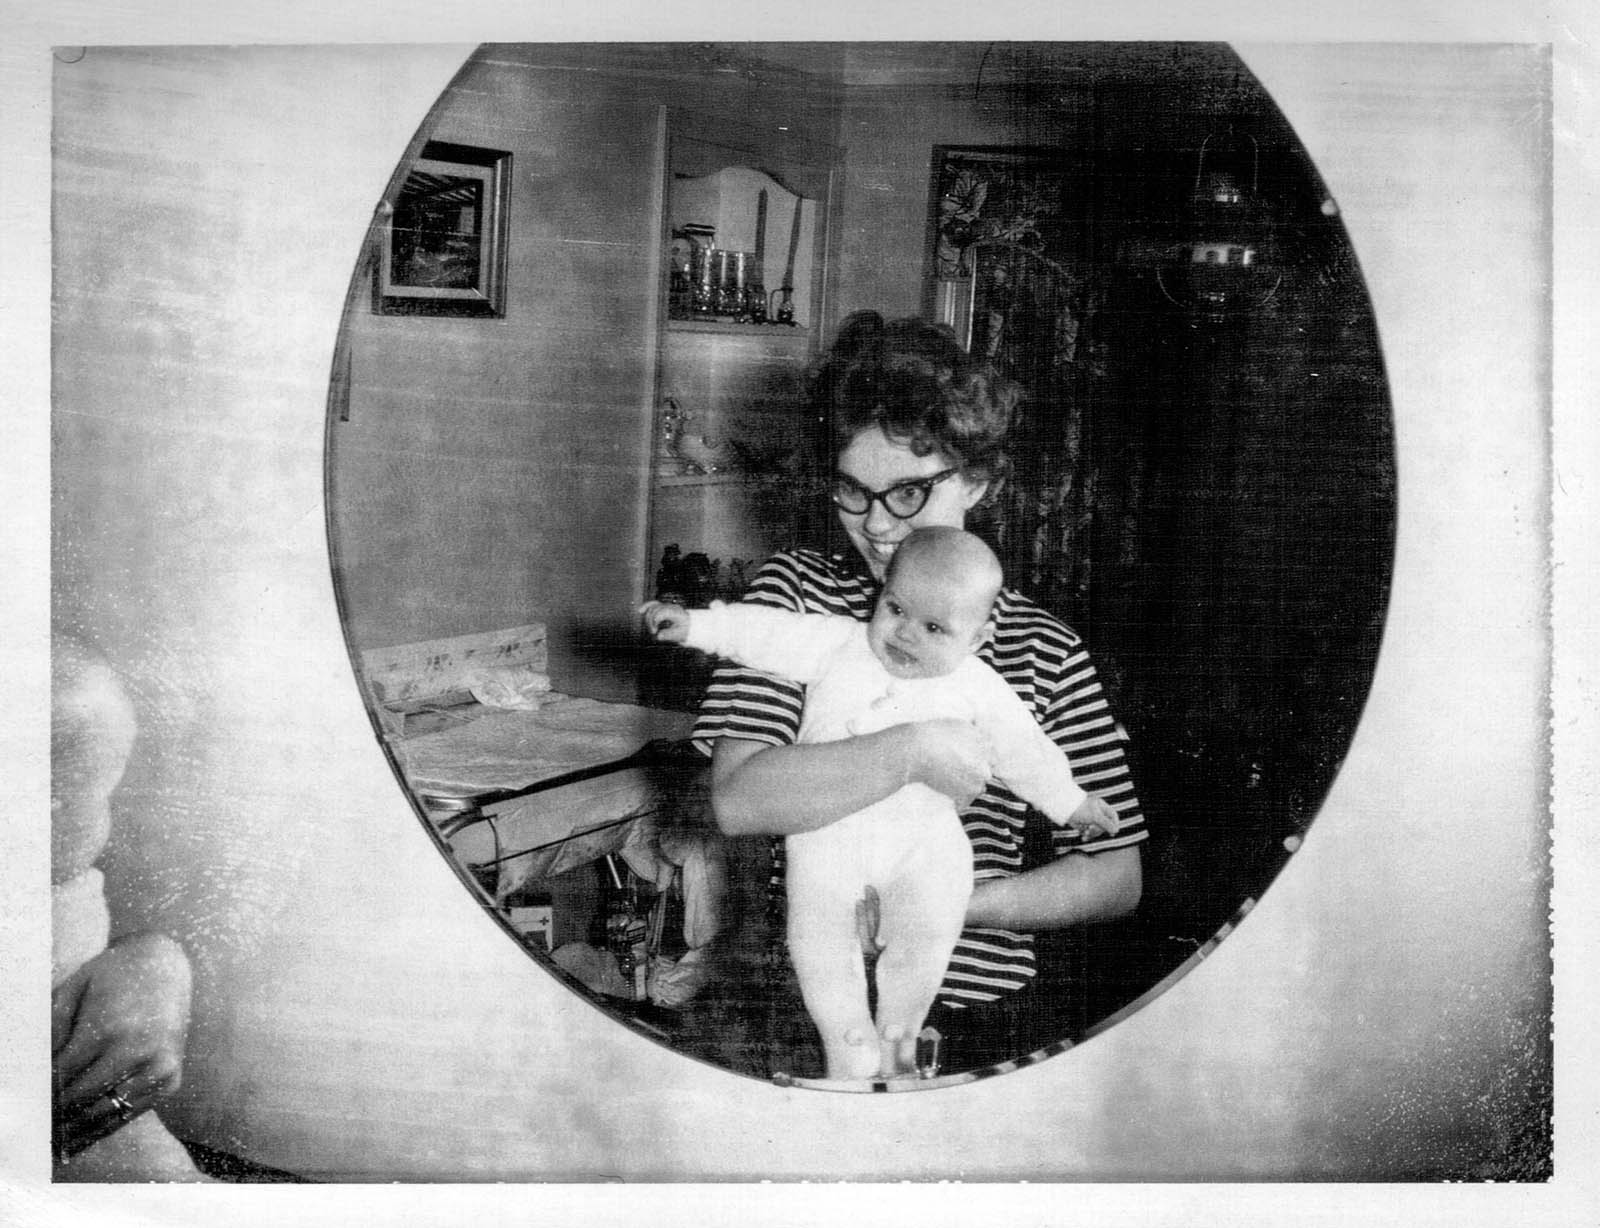 Mother's Day photo: your favorite photo of your mom